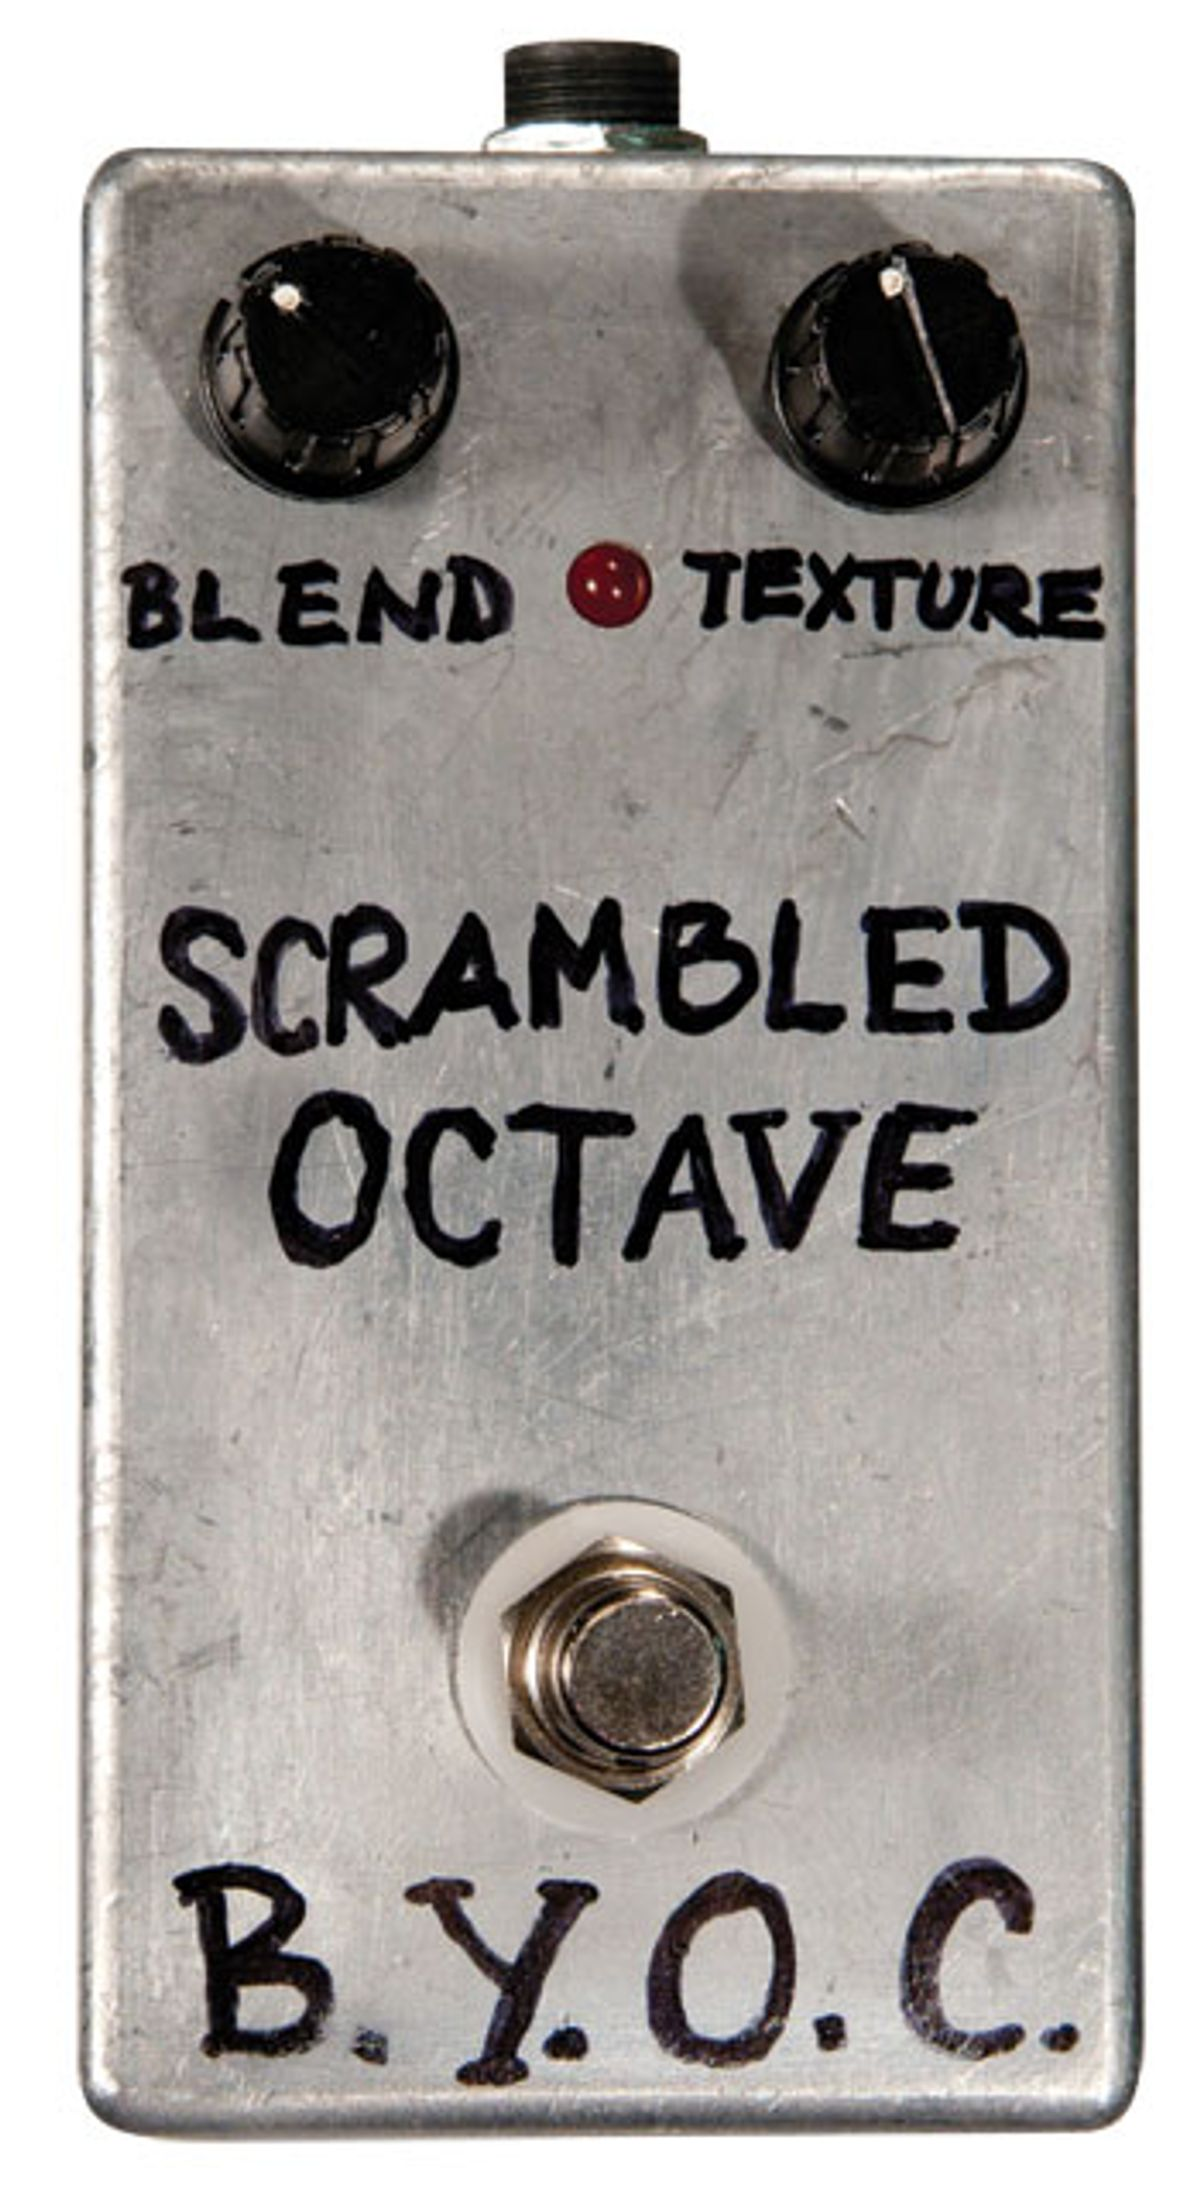 Build Your Own Clone Scrambled Octave Pedal Review